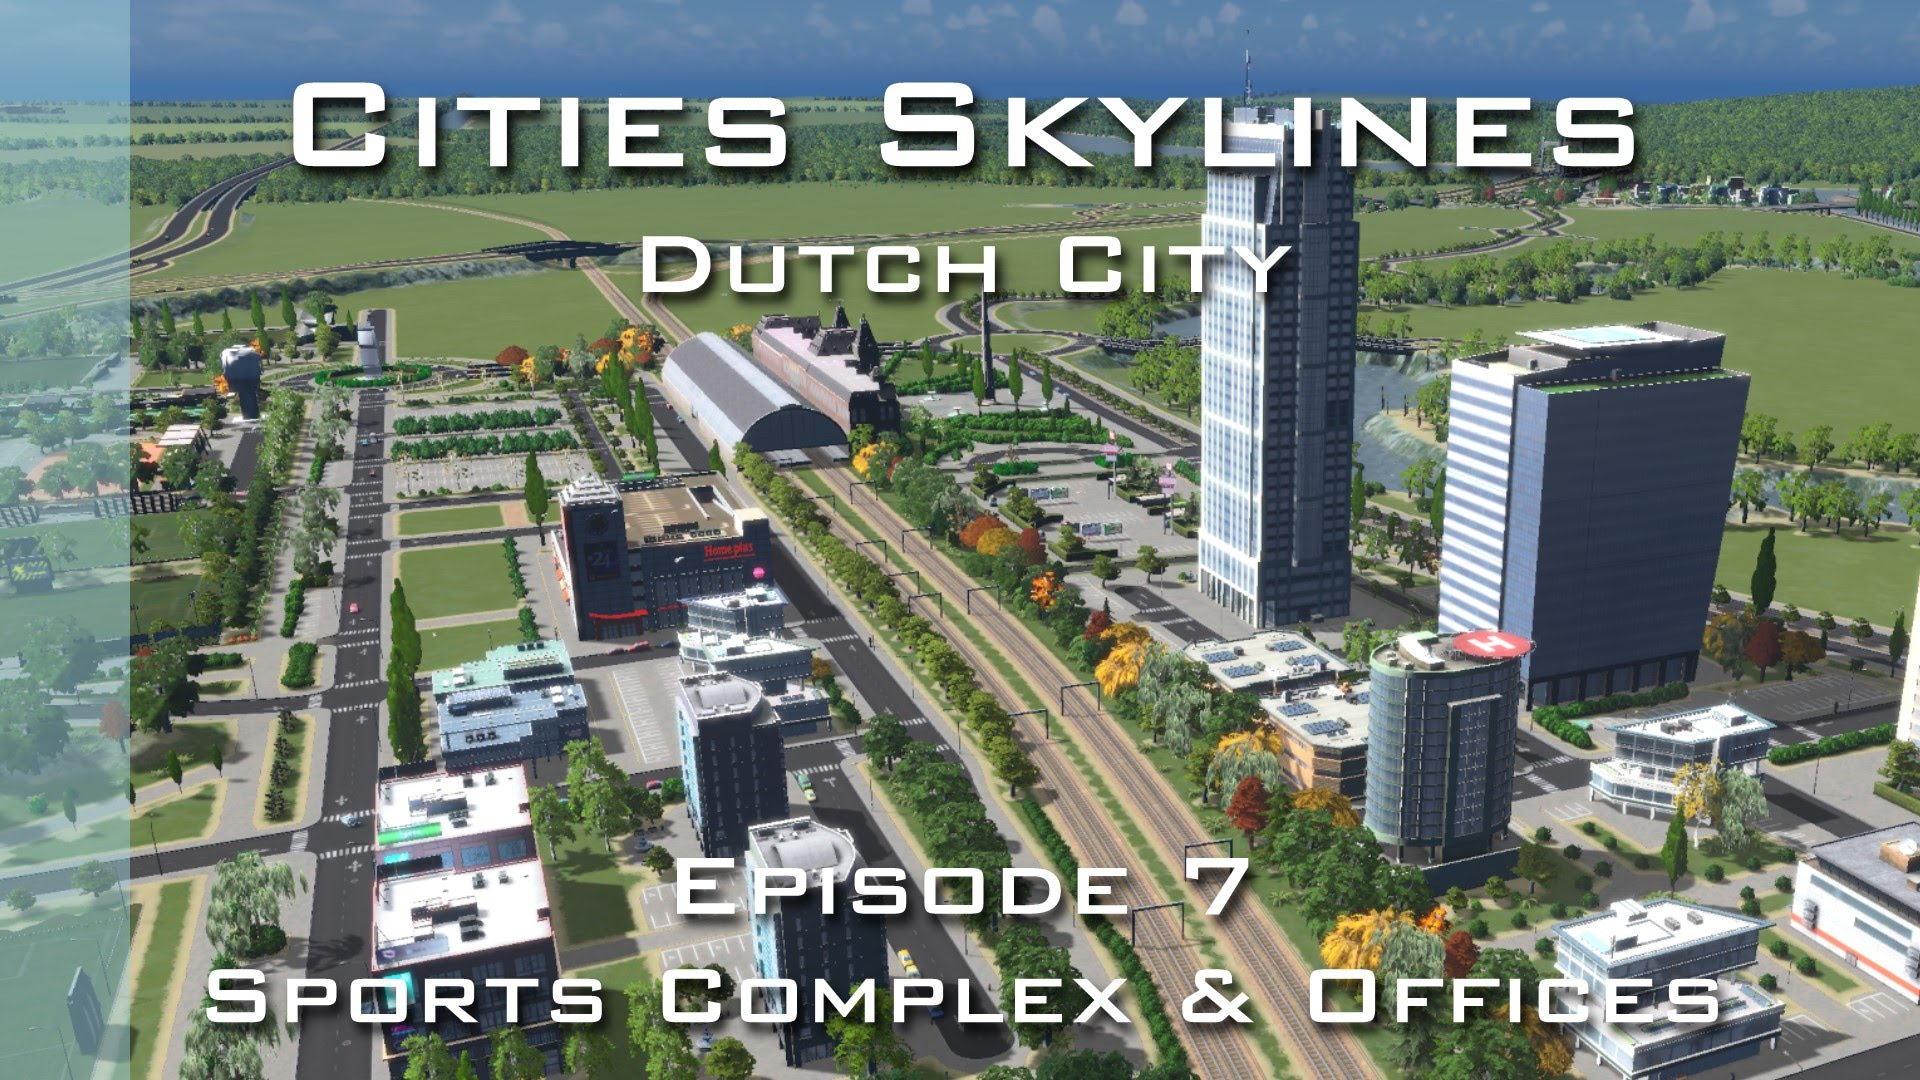 Cities Skylines: Dutch City - Episode 7 - Sports Complex & Offices ...